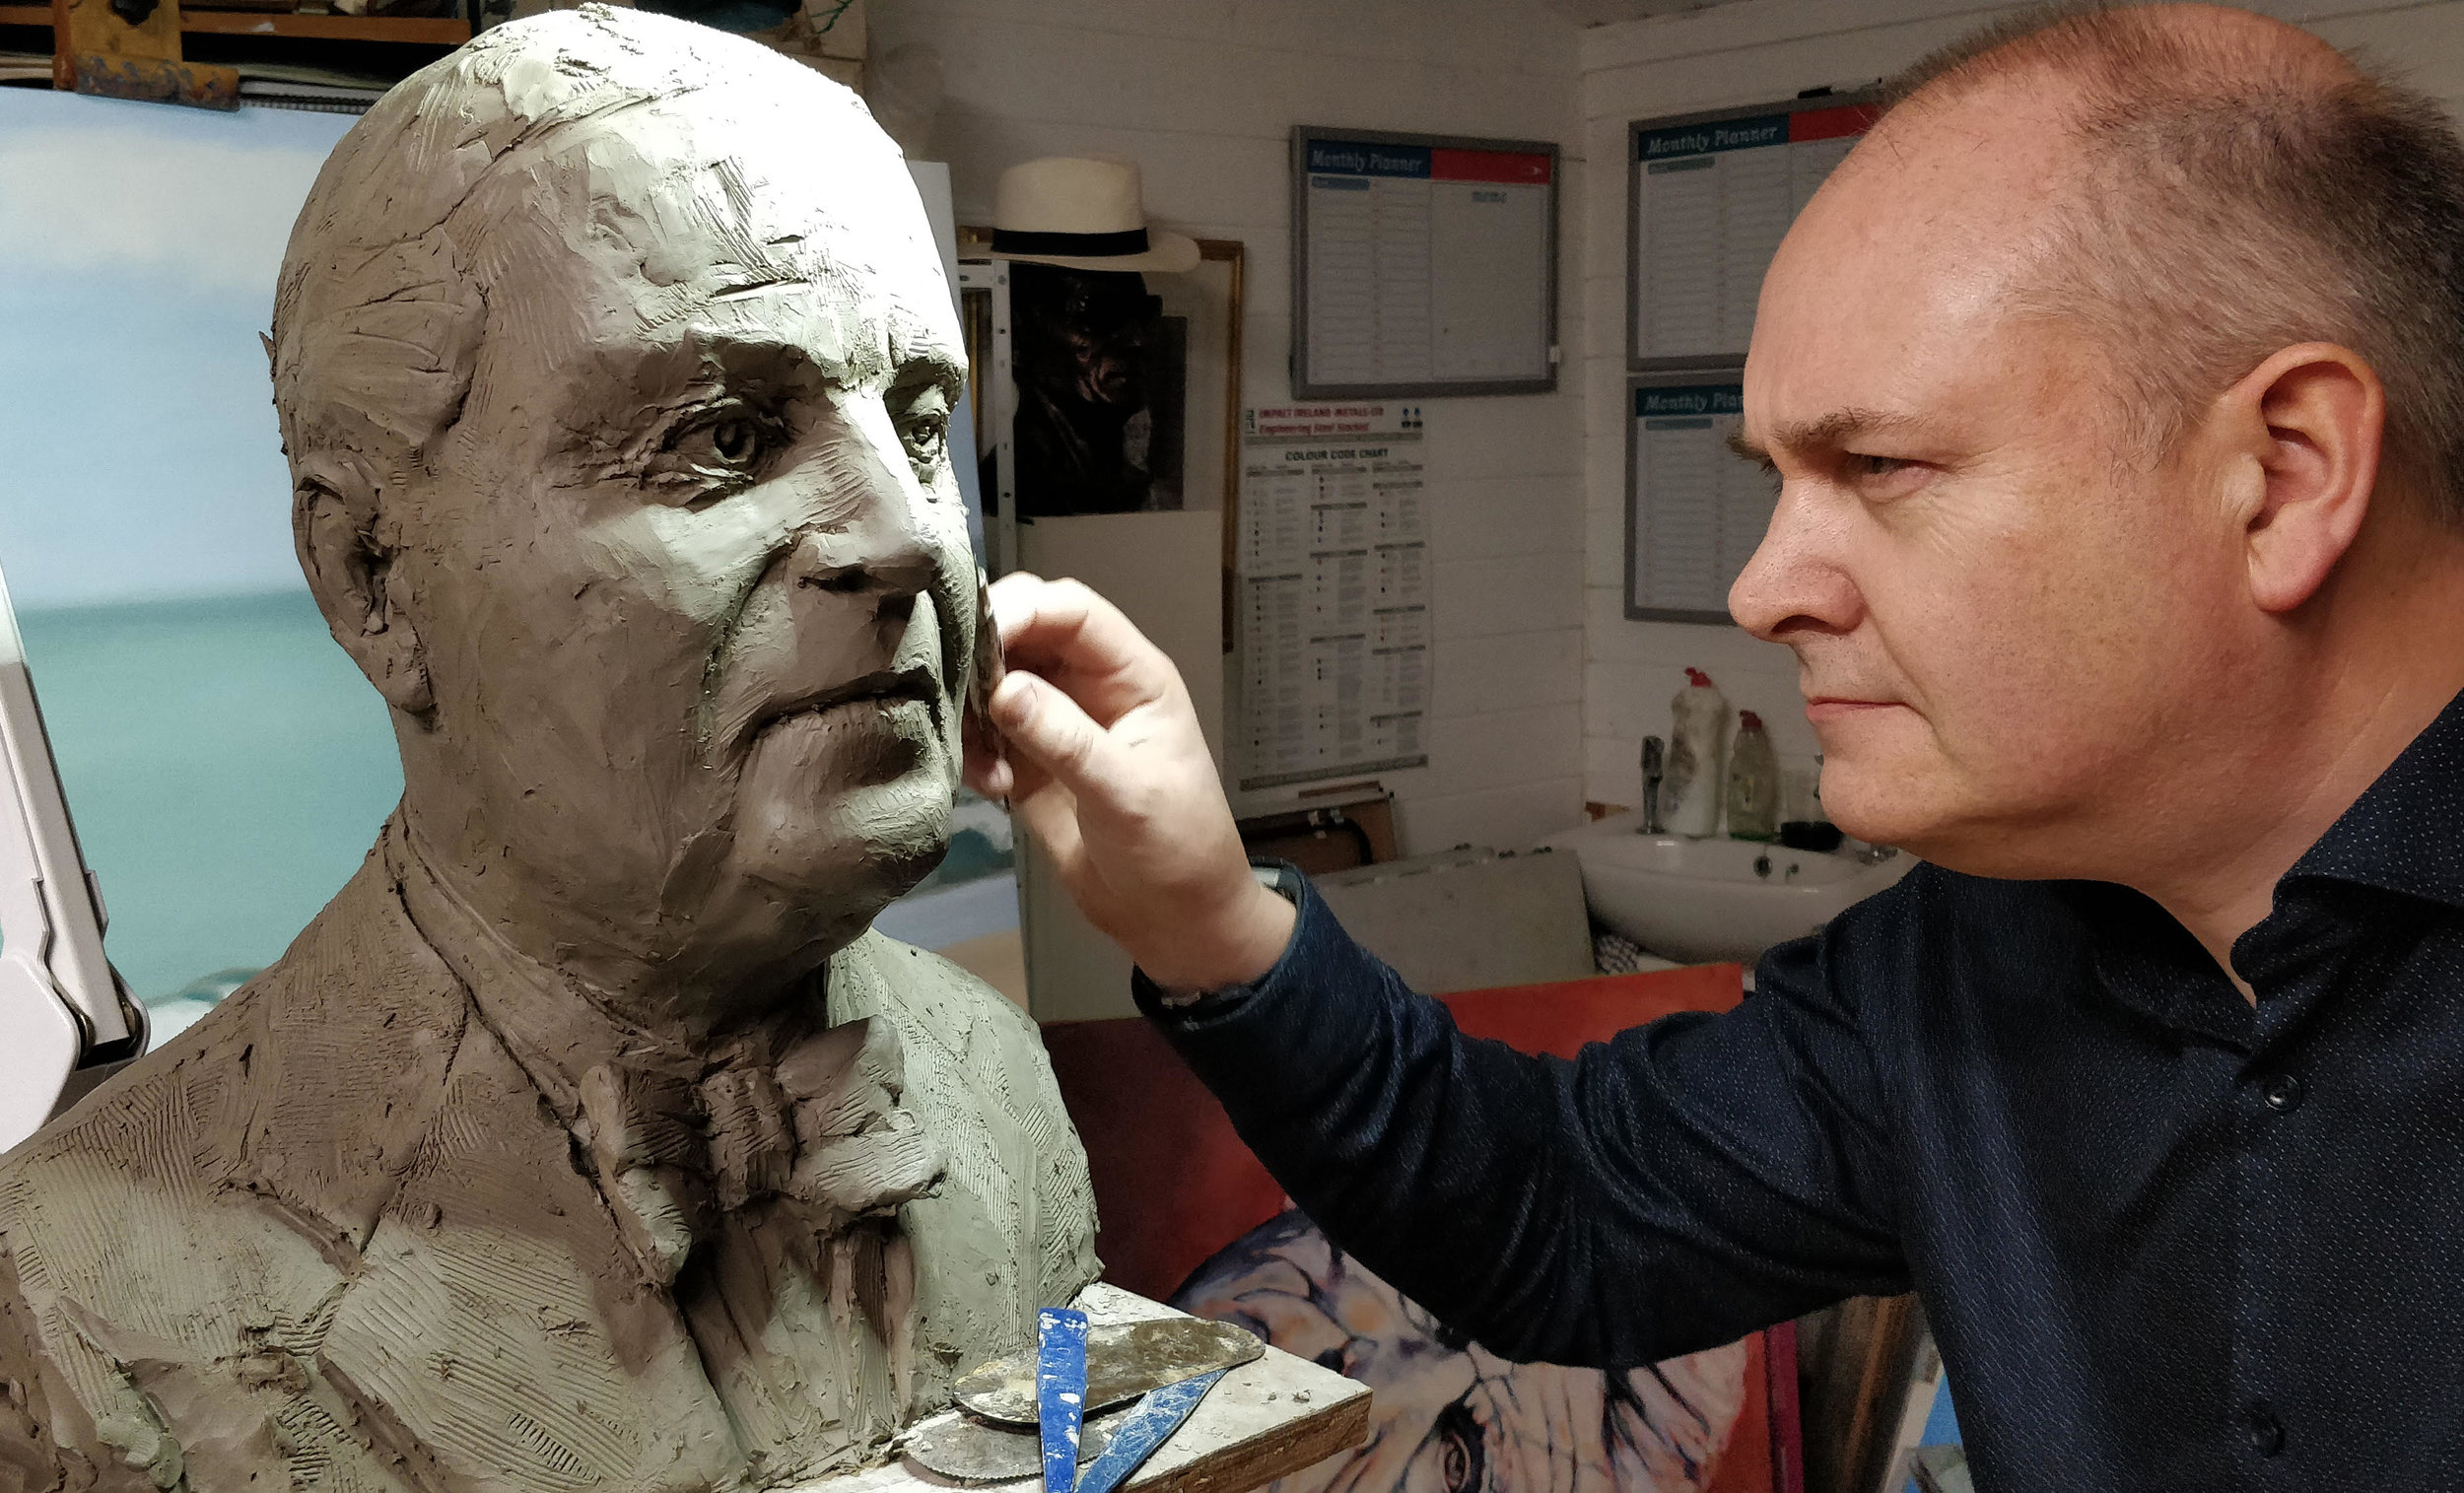 A Sneak peek at Artist Paul Flynn working on his Sculpture of the late artist Paul Henry to be unveiled at the event